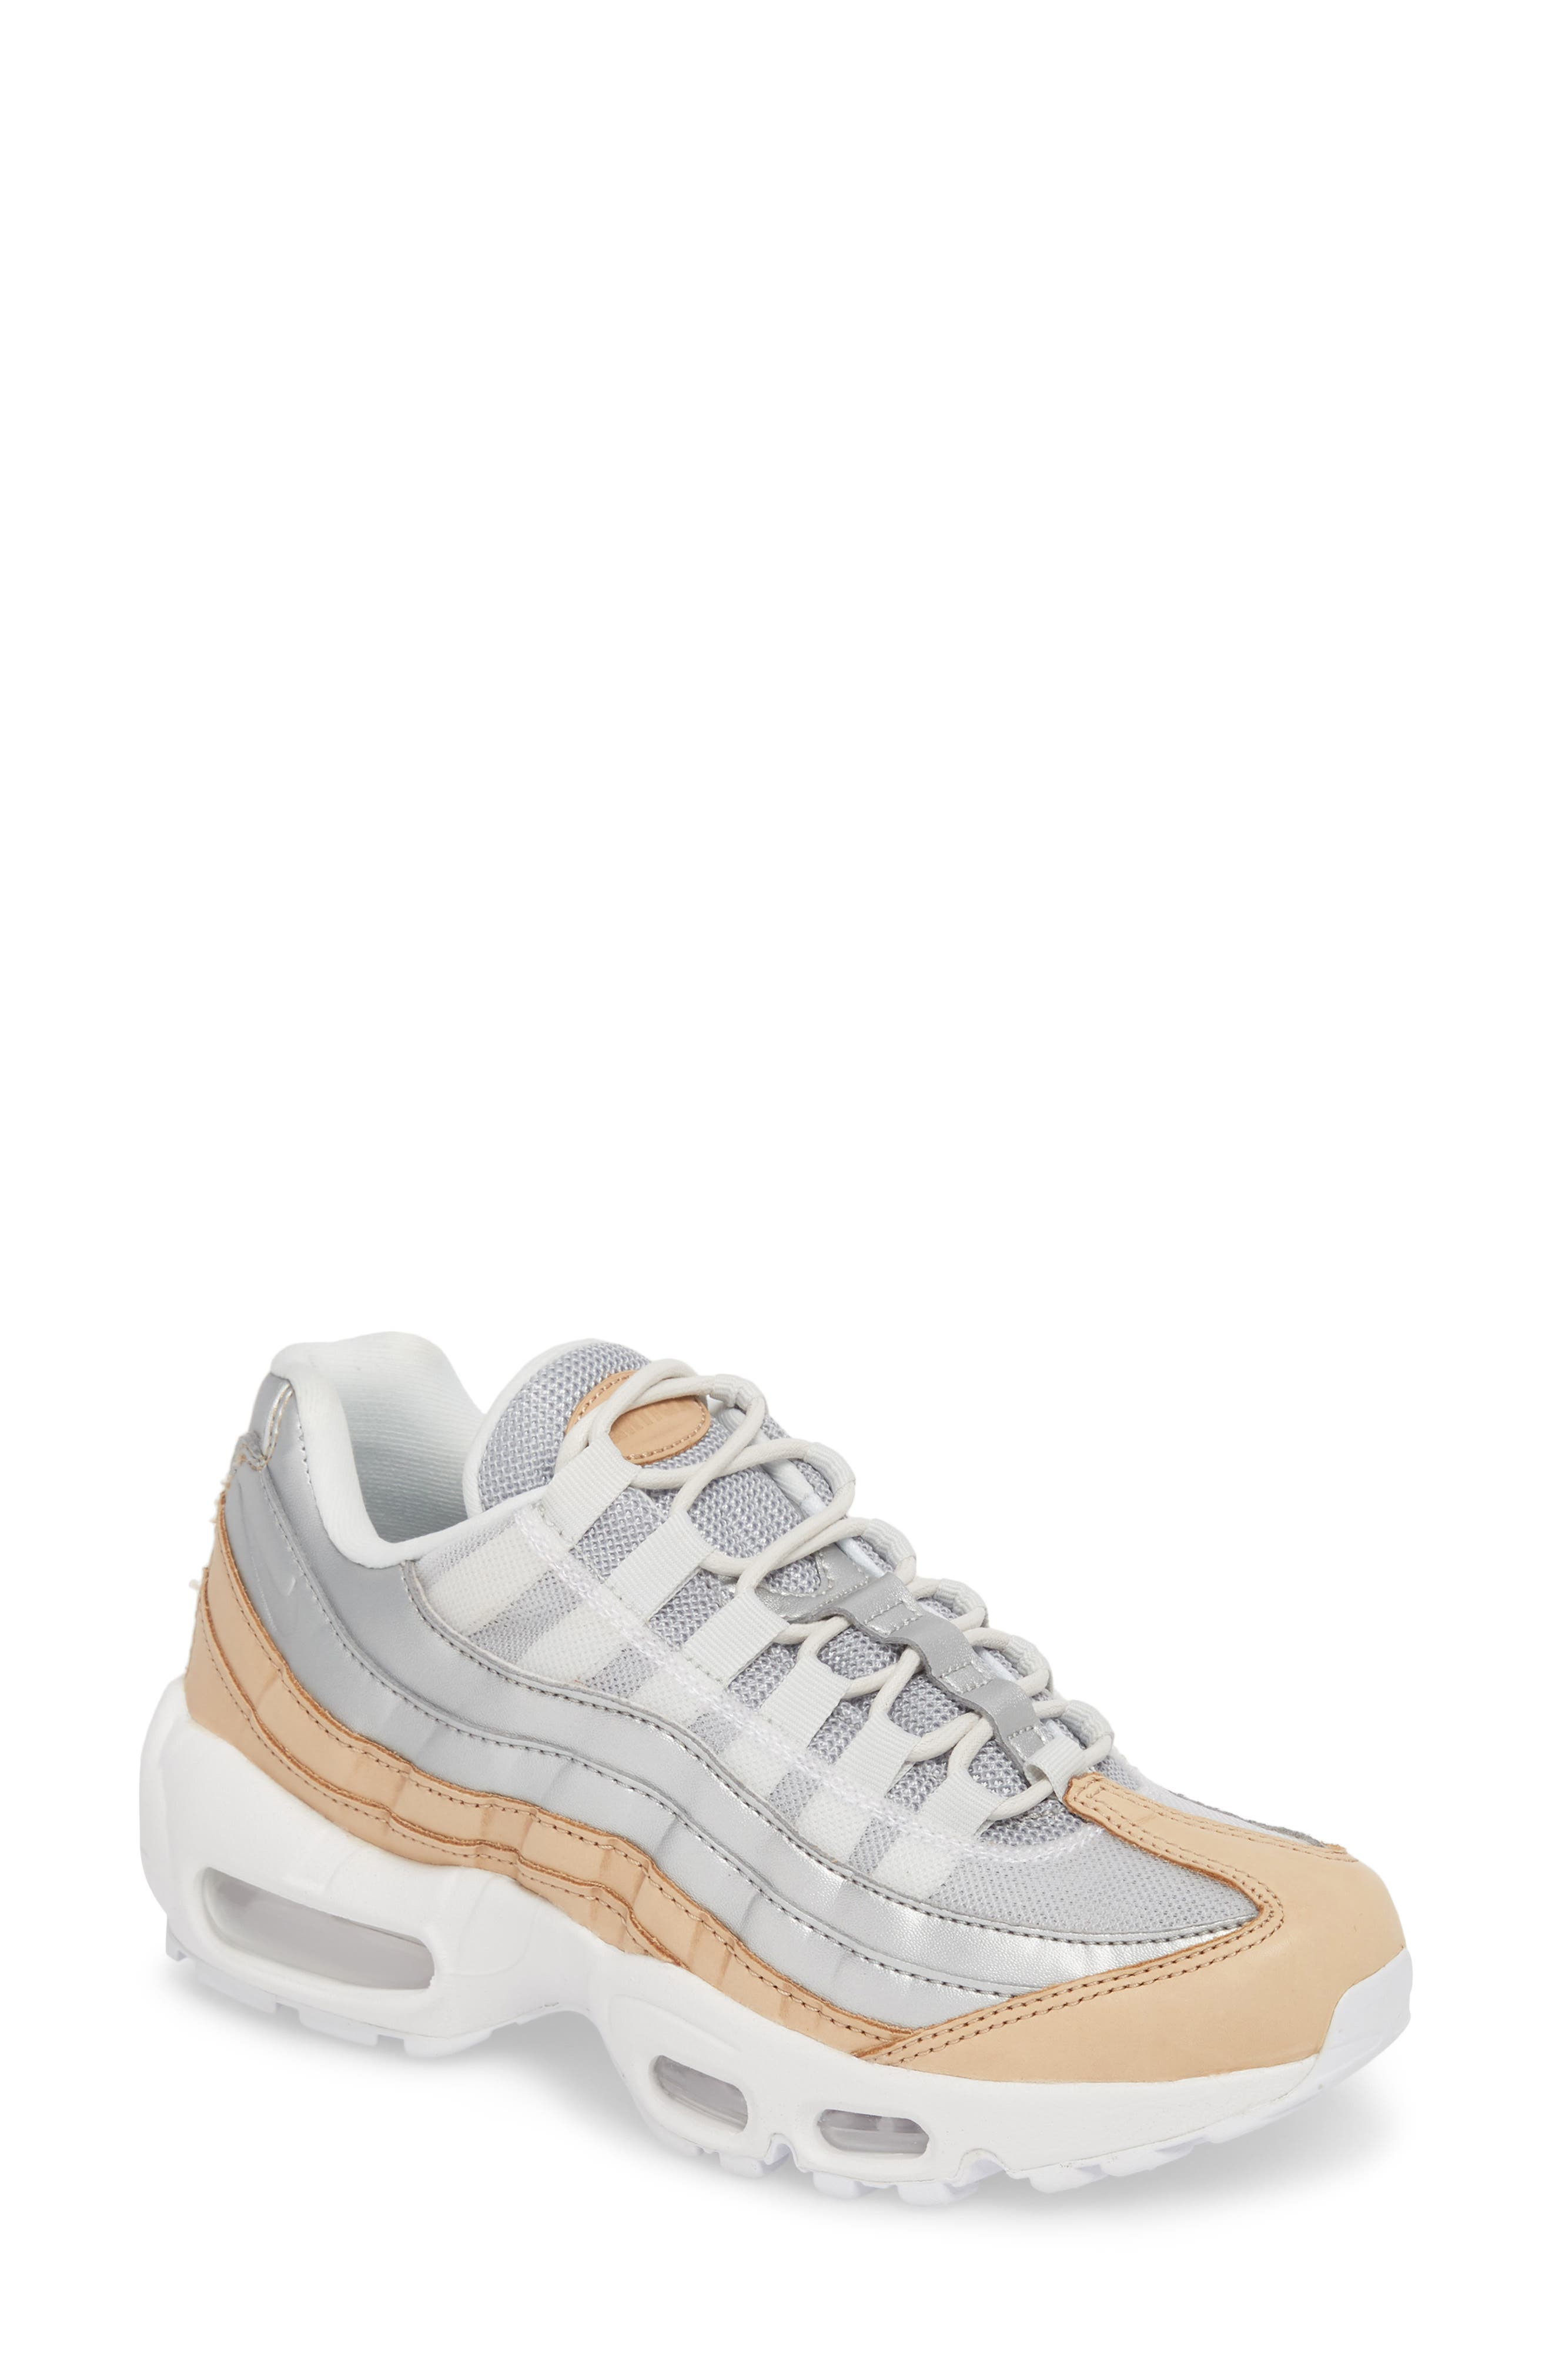 Air Max 95 Special Edition Running Shoe,                             Main thumbnail 1, color,                             PLATINUM/ SILVER/ WHITE